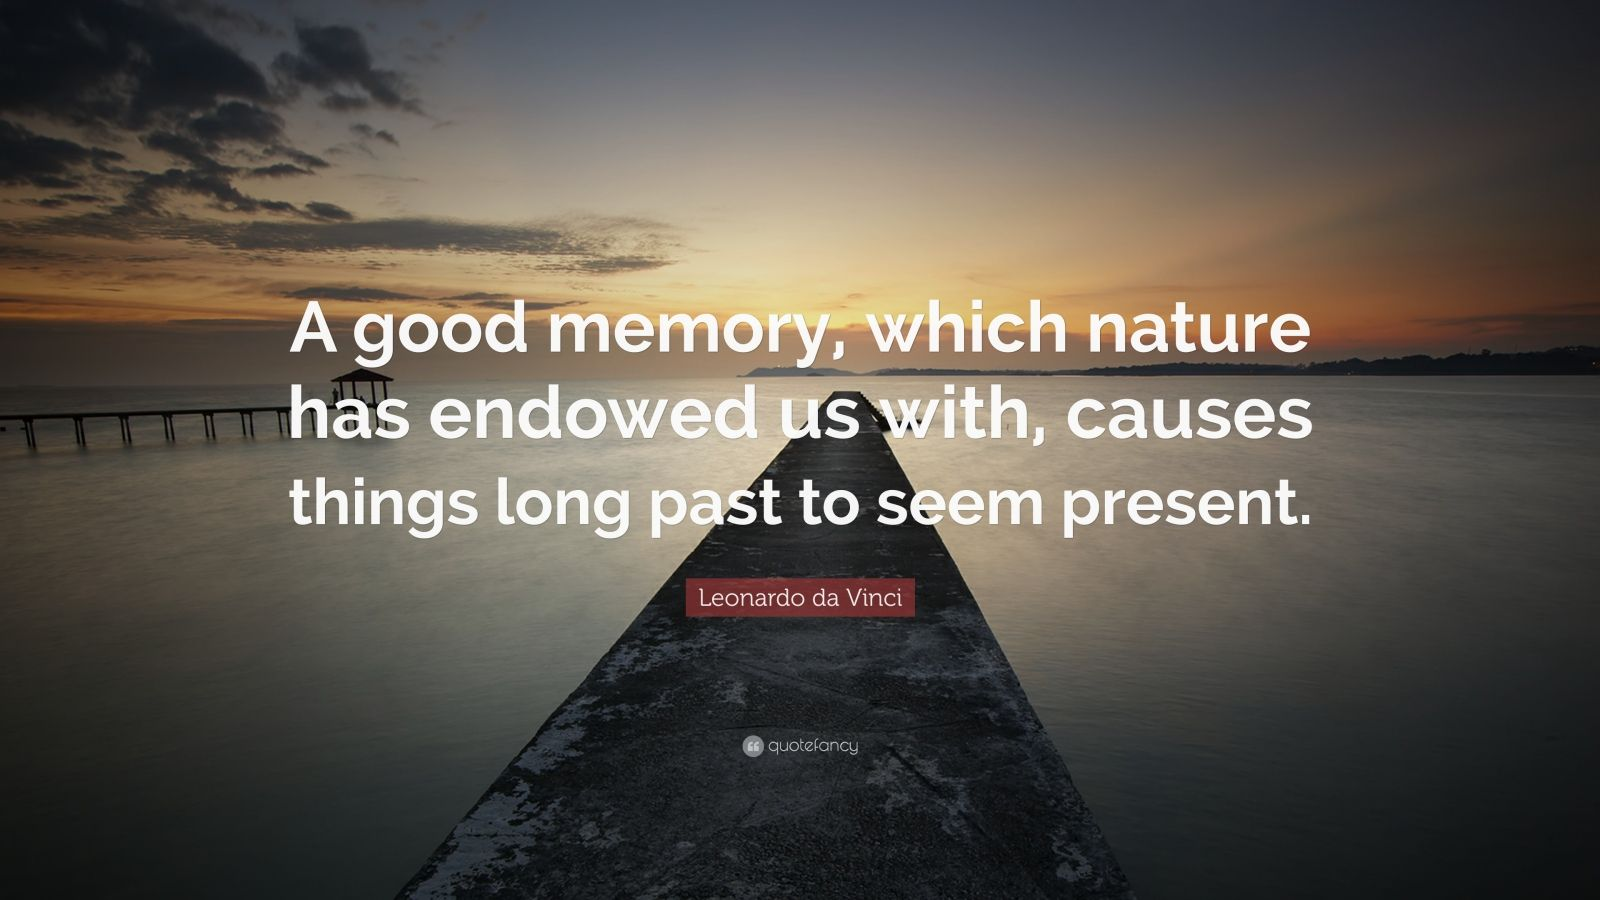 """Leonardo da Vinci Quote: """"A good memory, which nature has endowed us with, causes things long past to seem present."""""""